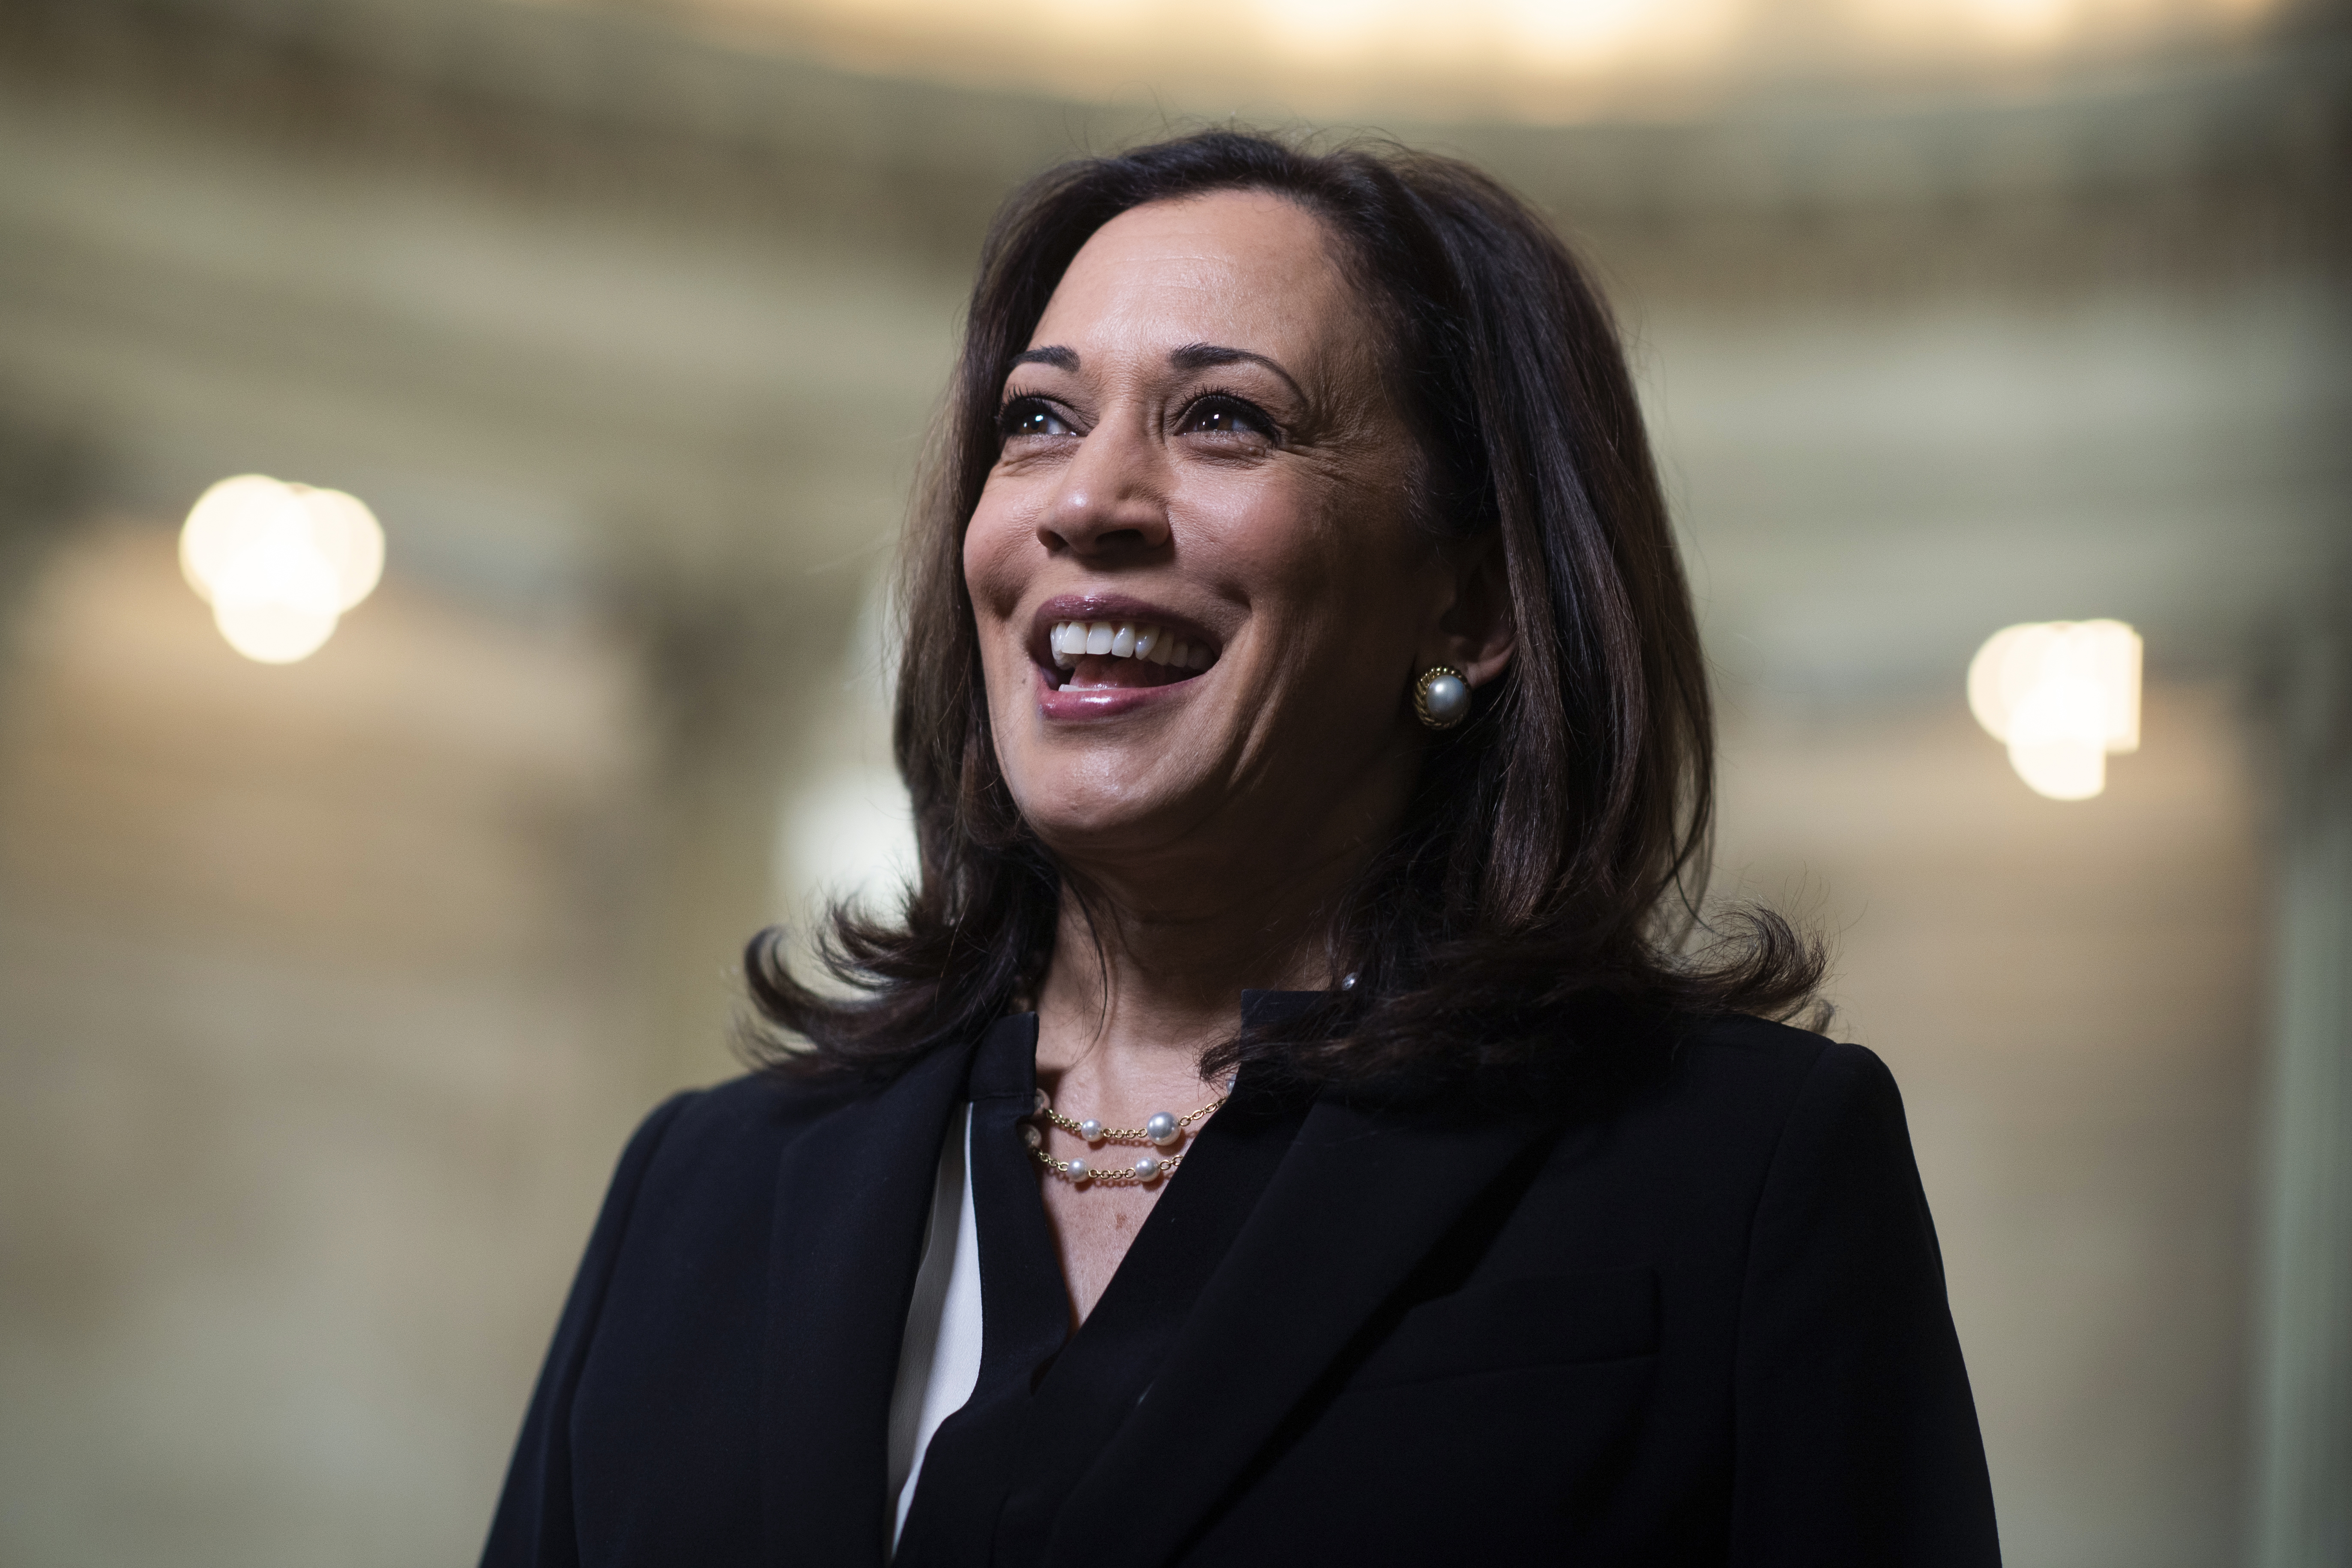 Kamala Harris Net Worth Biden Vp Pick Worth As Much As 6 3 Million According To Senate Filings Fortune